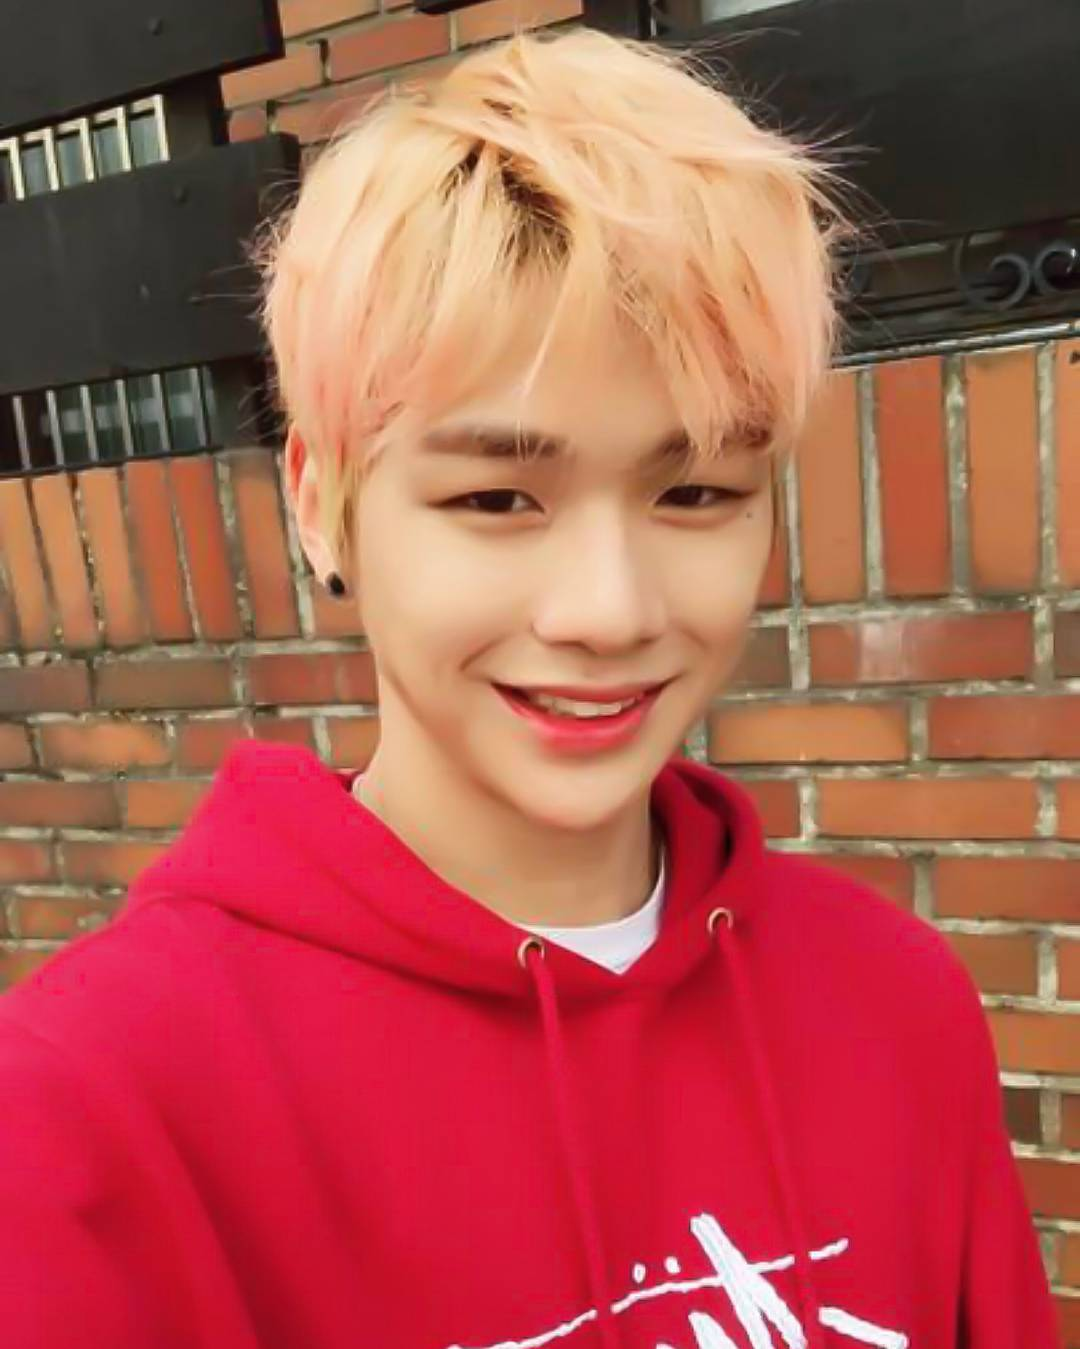 Just 31 Pictures Of Wanna One Kang Daniel S Adorable Smile Koreaboo